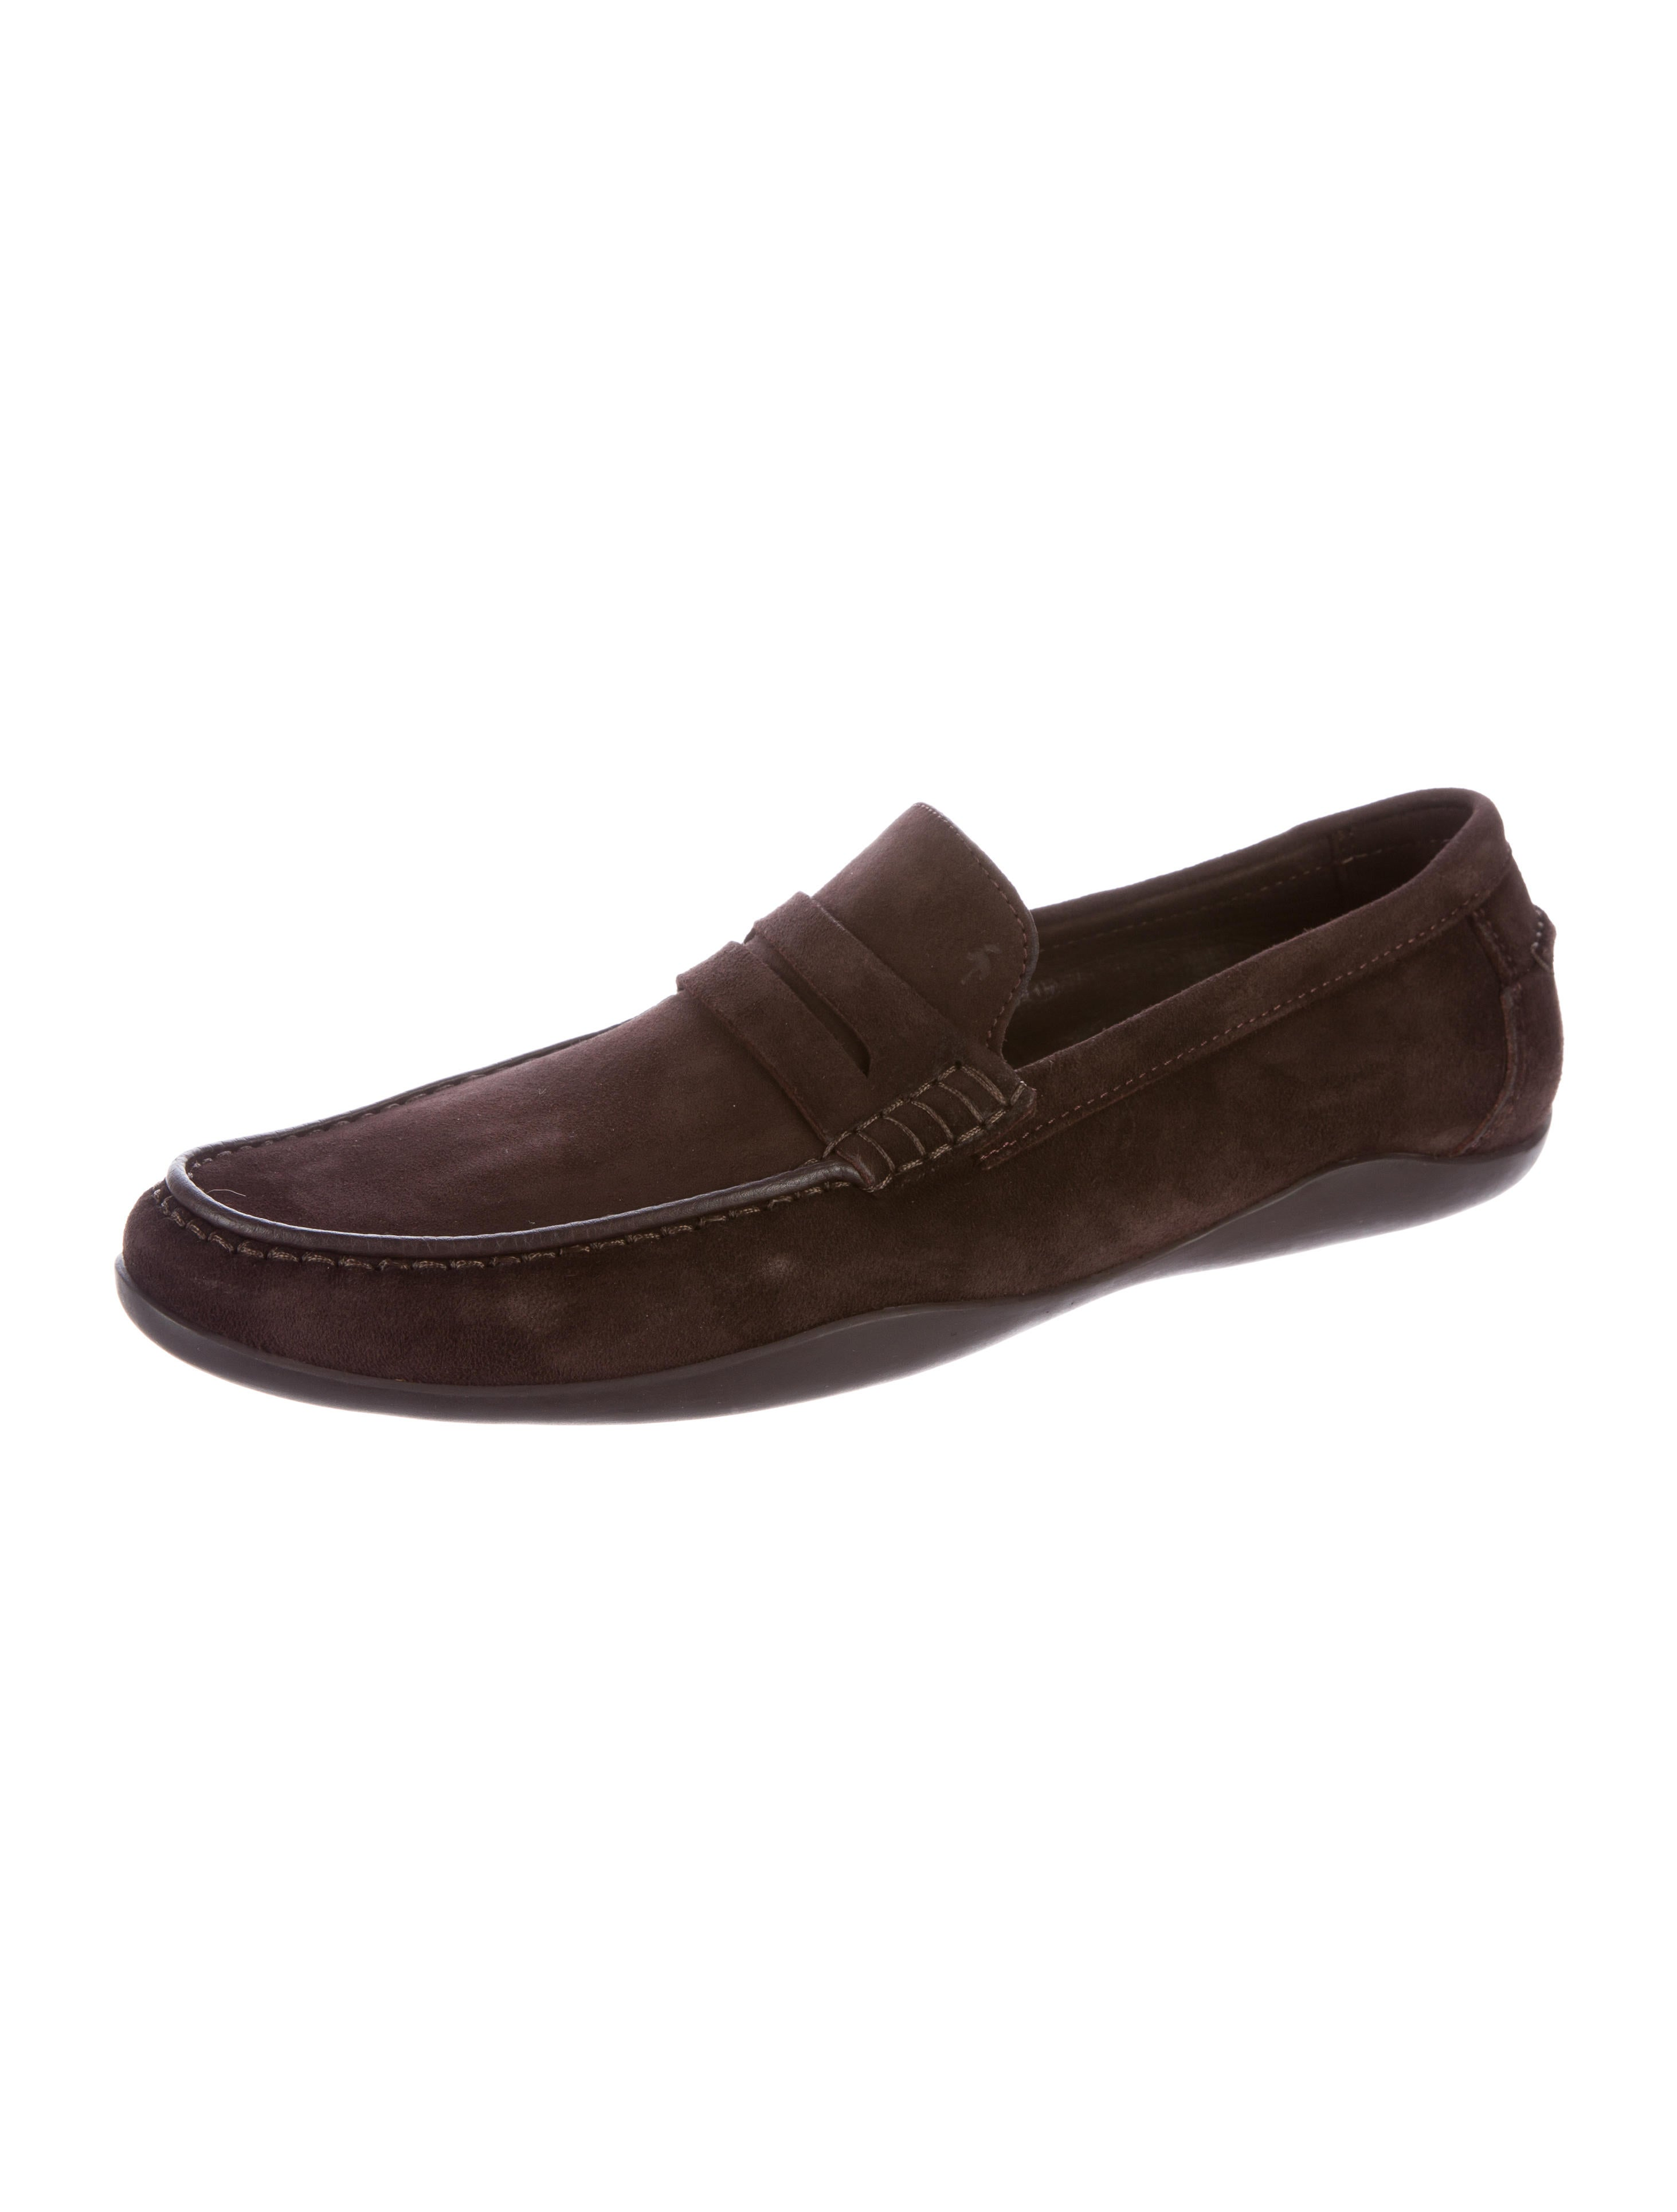 harrys of basel suede driving loafers shoes